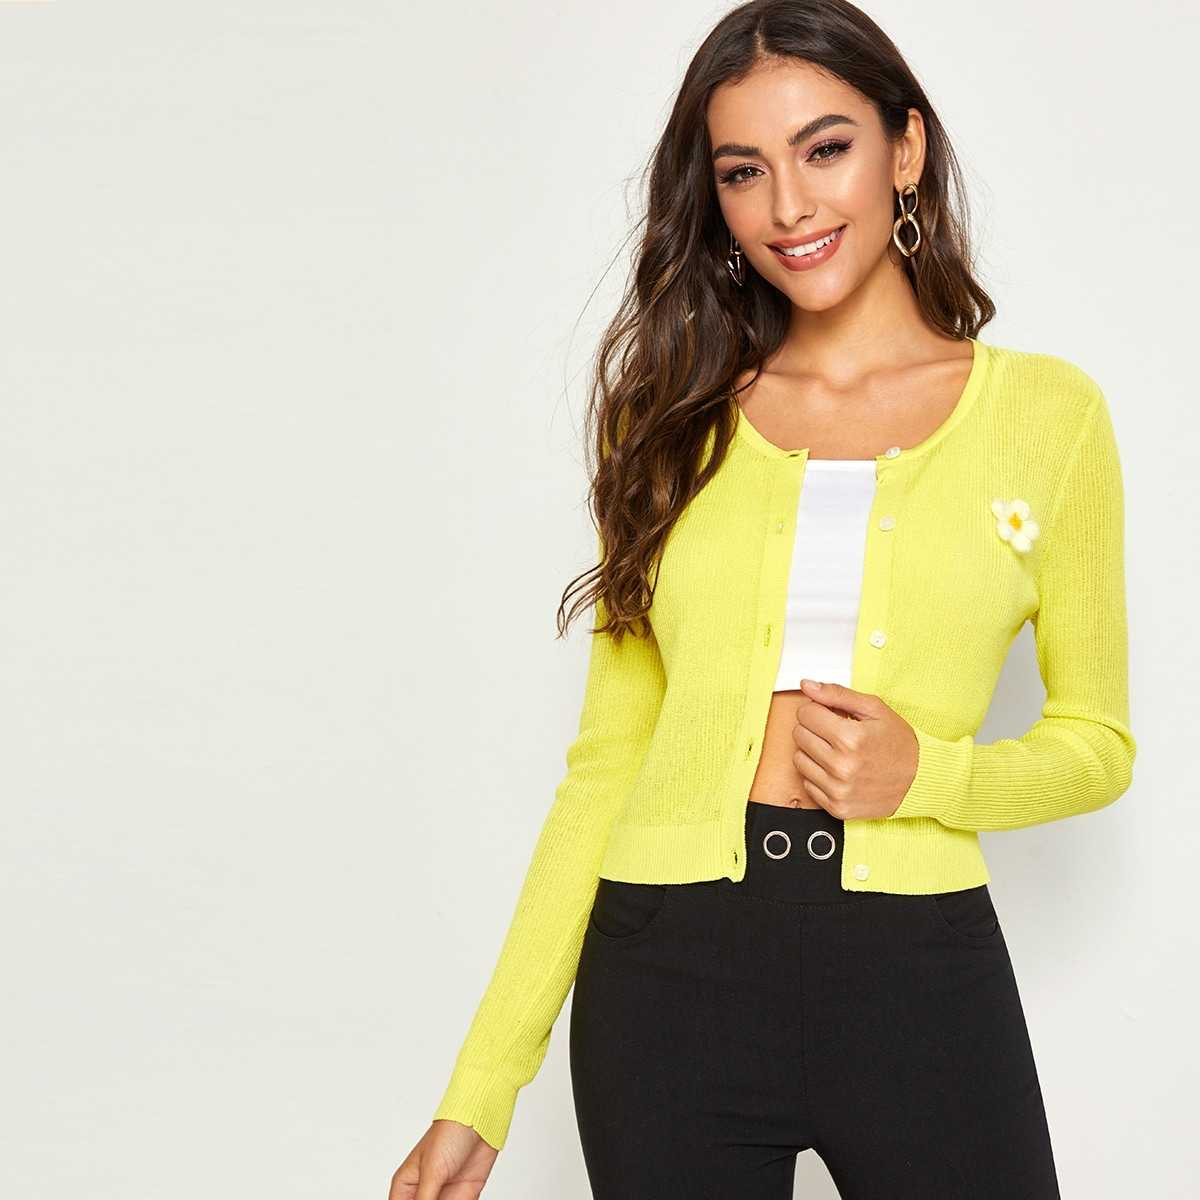 Neon Yellow Appliques Detail Cardigan in Yellow Bright by ROMWE on GOOFASH